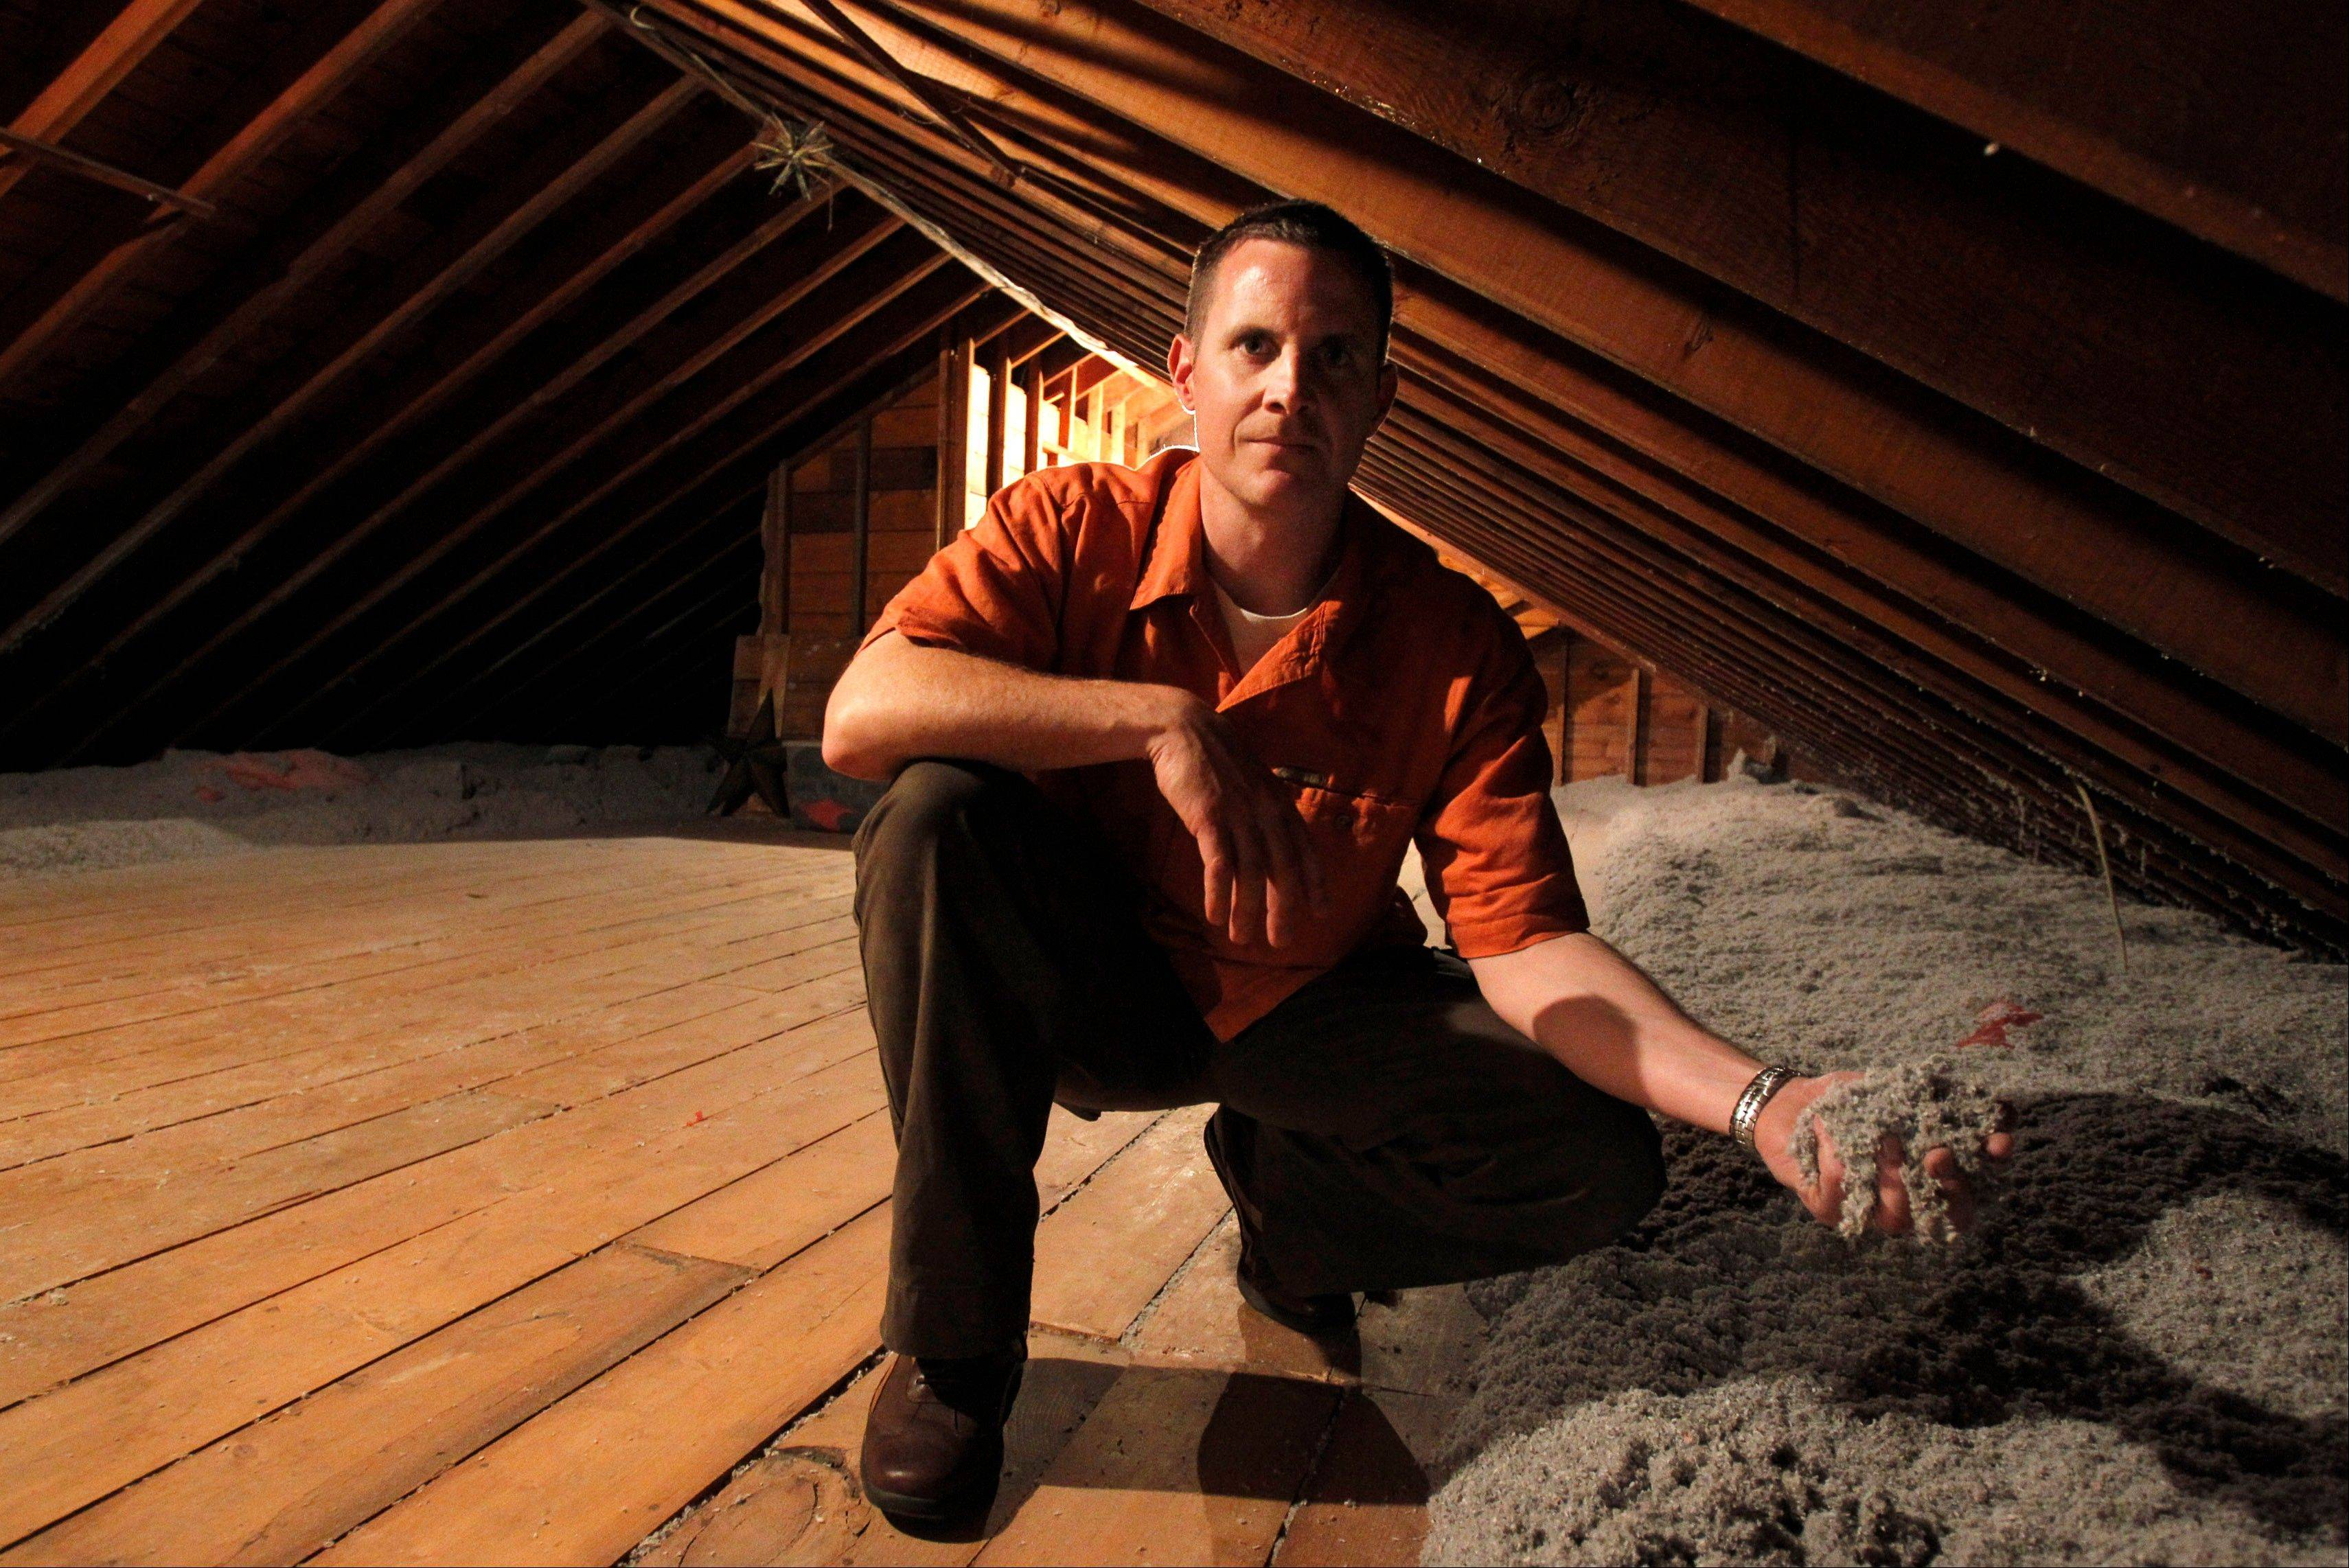 Stephen Botehlo, of Westwood, Mass., holds cellulose insulation in the attic of his home. Botehlo installed the cellulose insulation as an energy saving measure. Associated Press